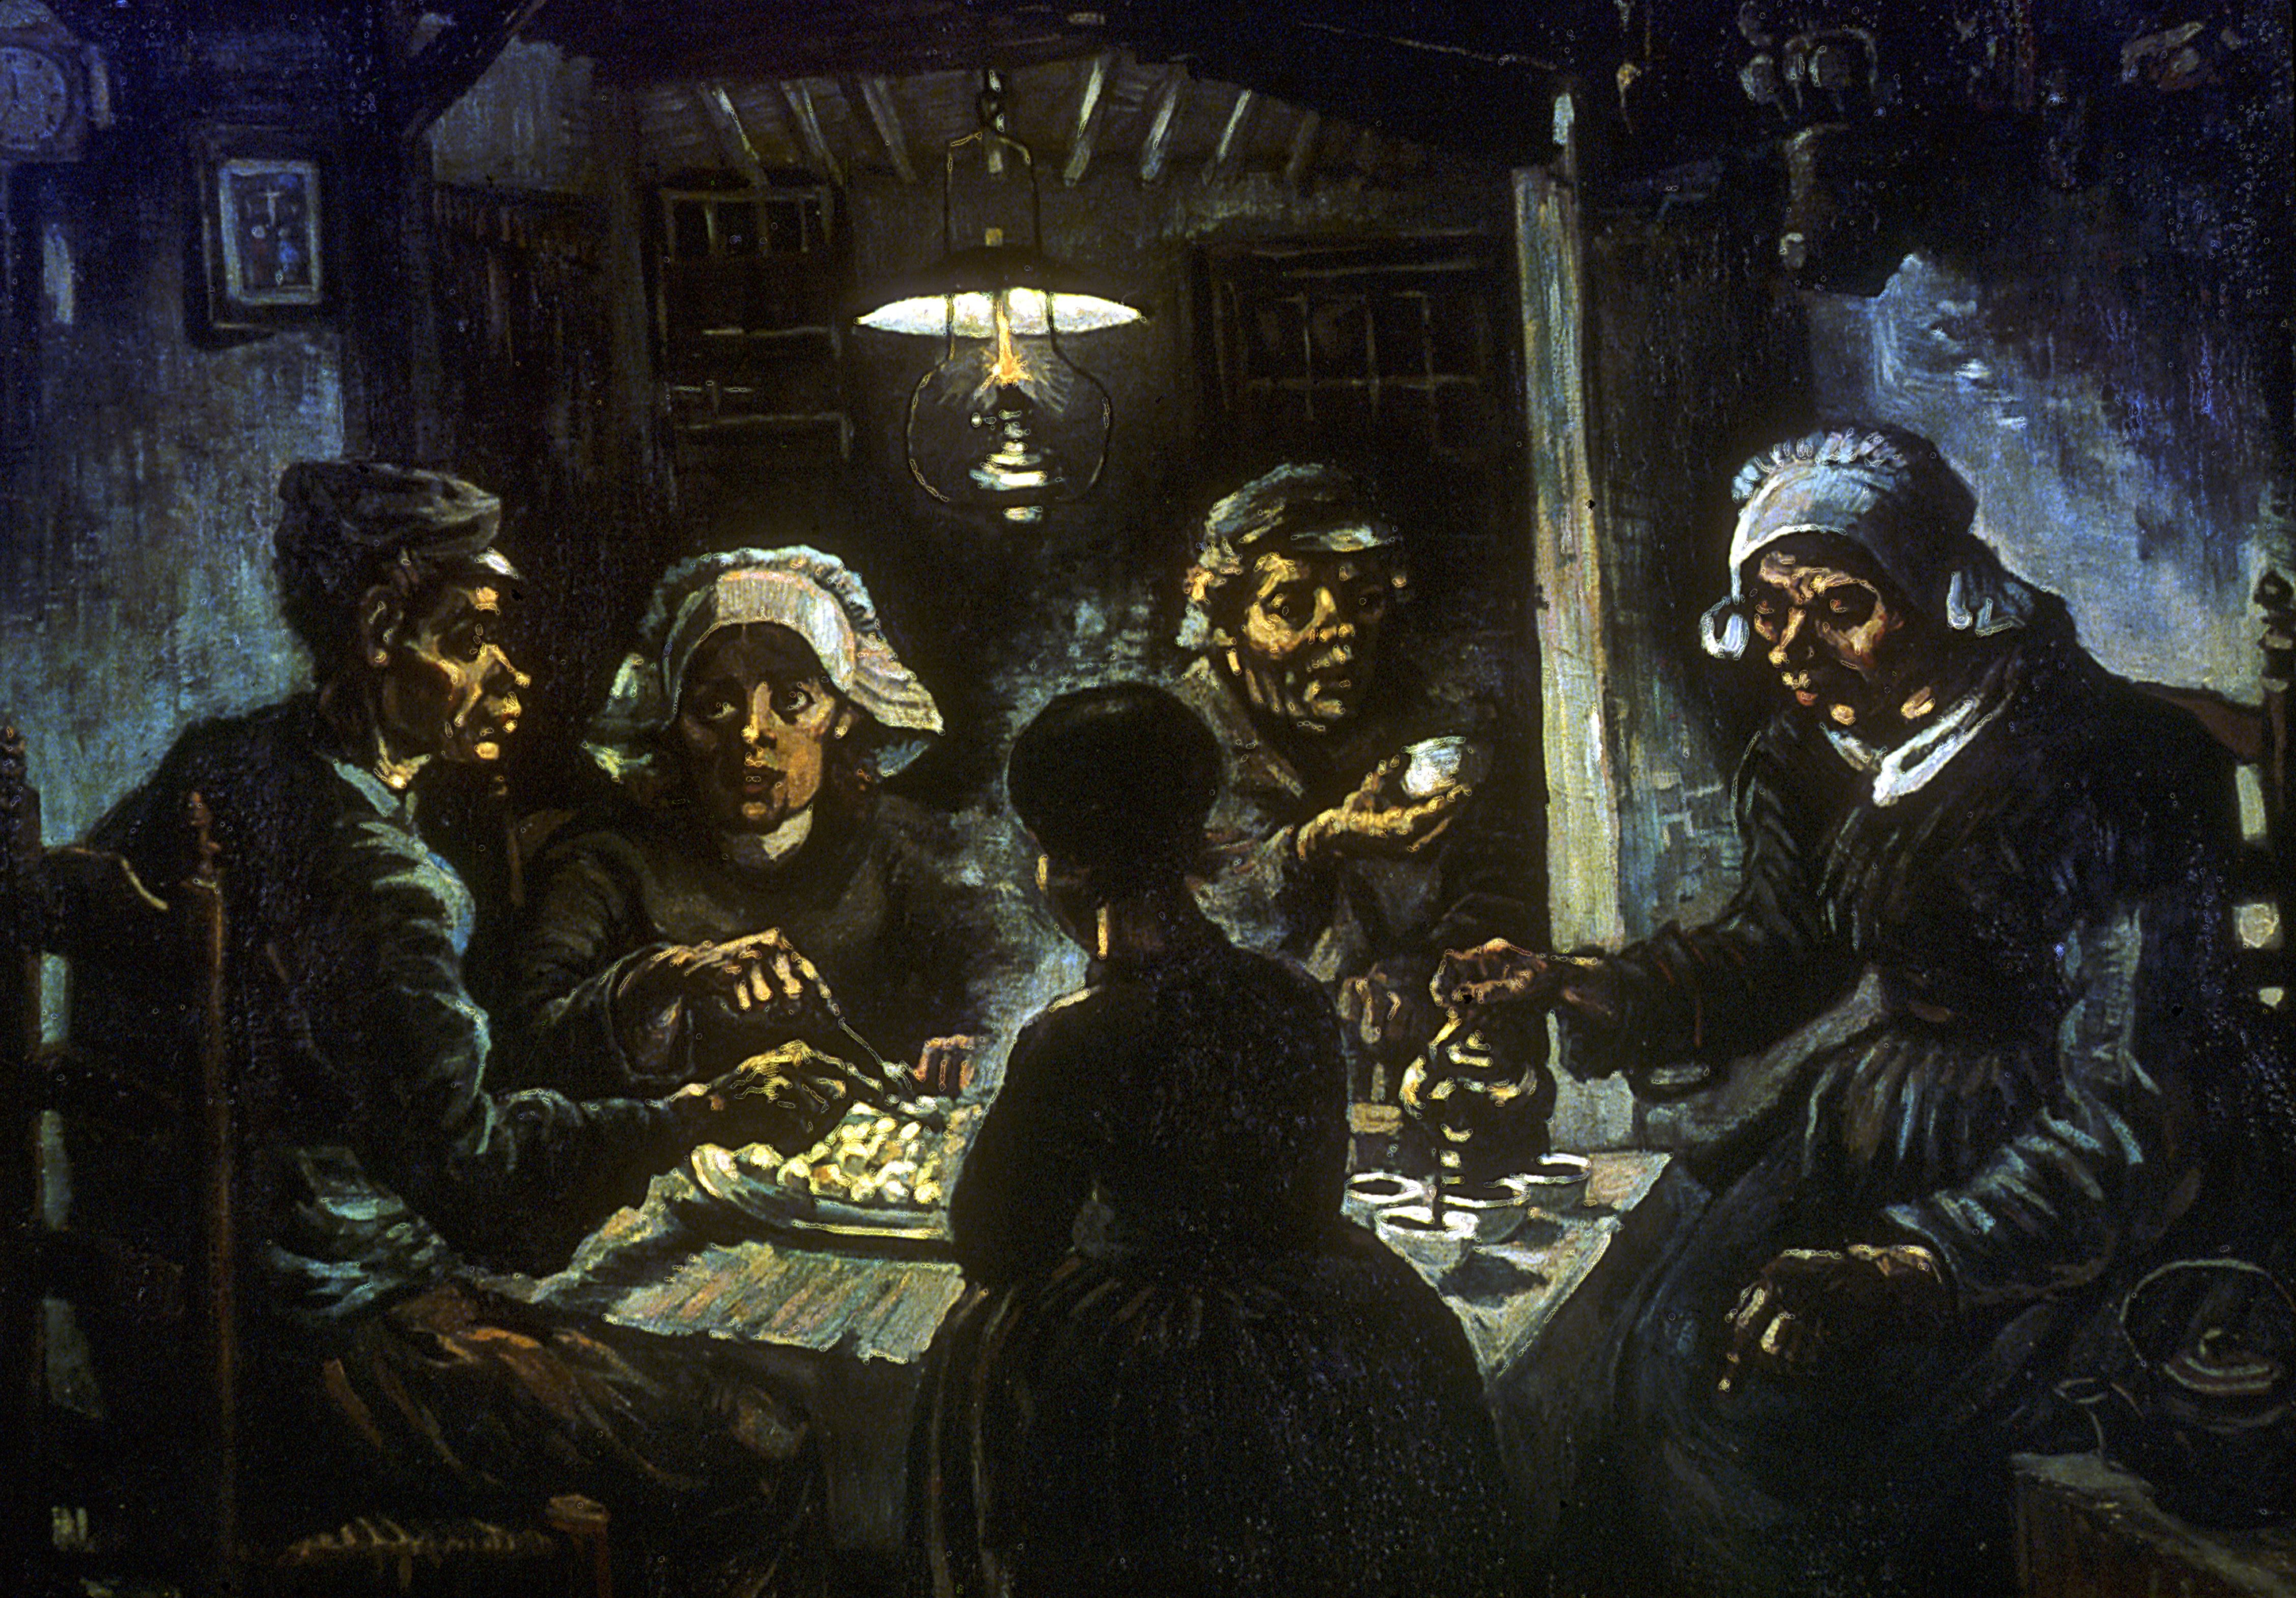 Five people huddle at a square table in a dark room illuminated by a single hanging lamp.